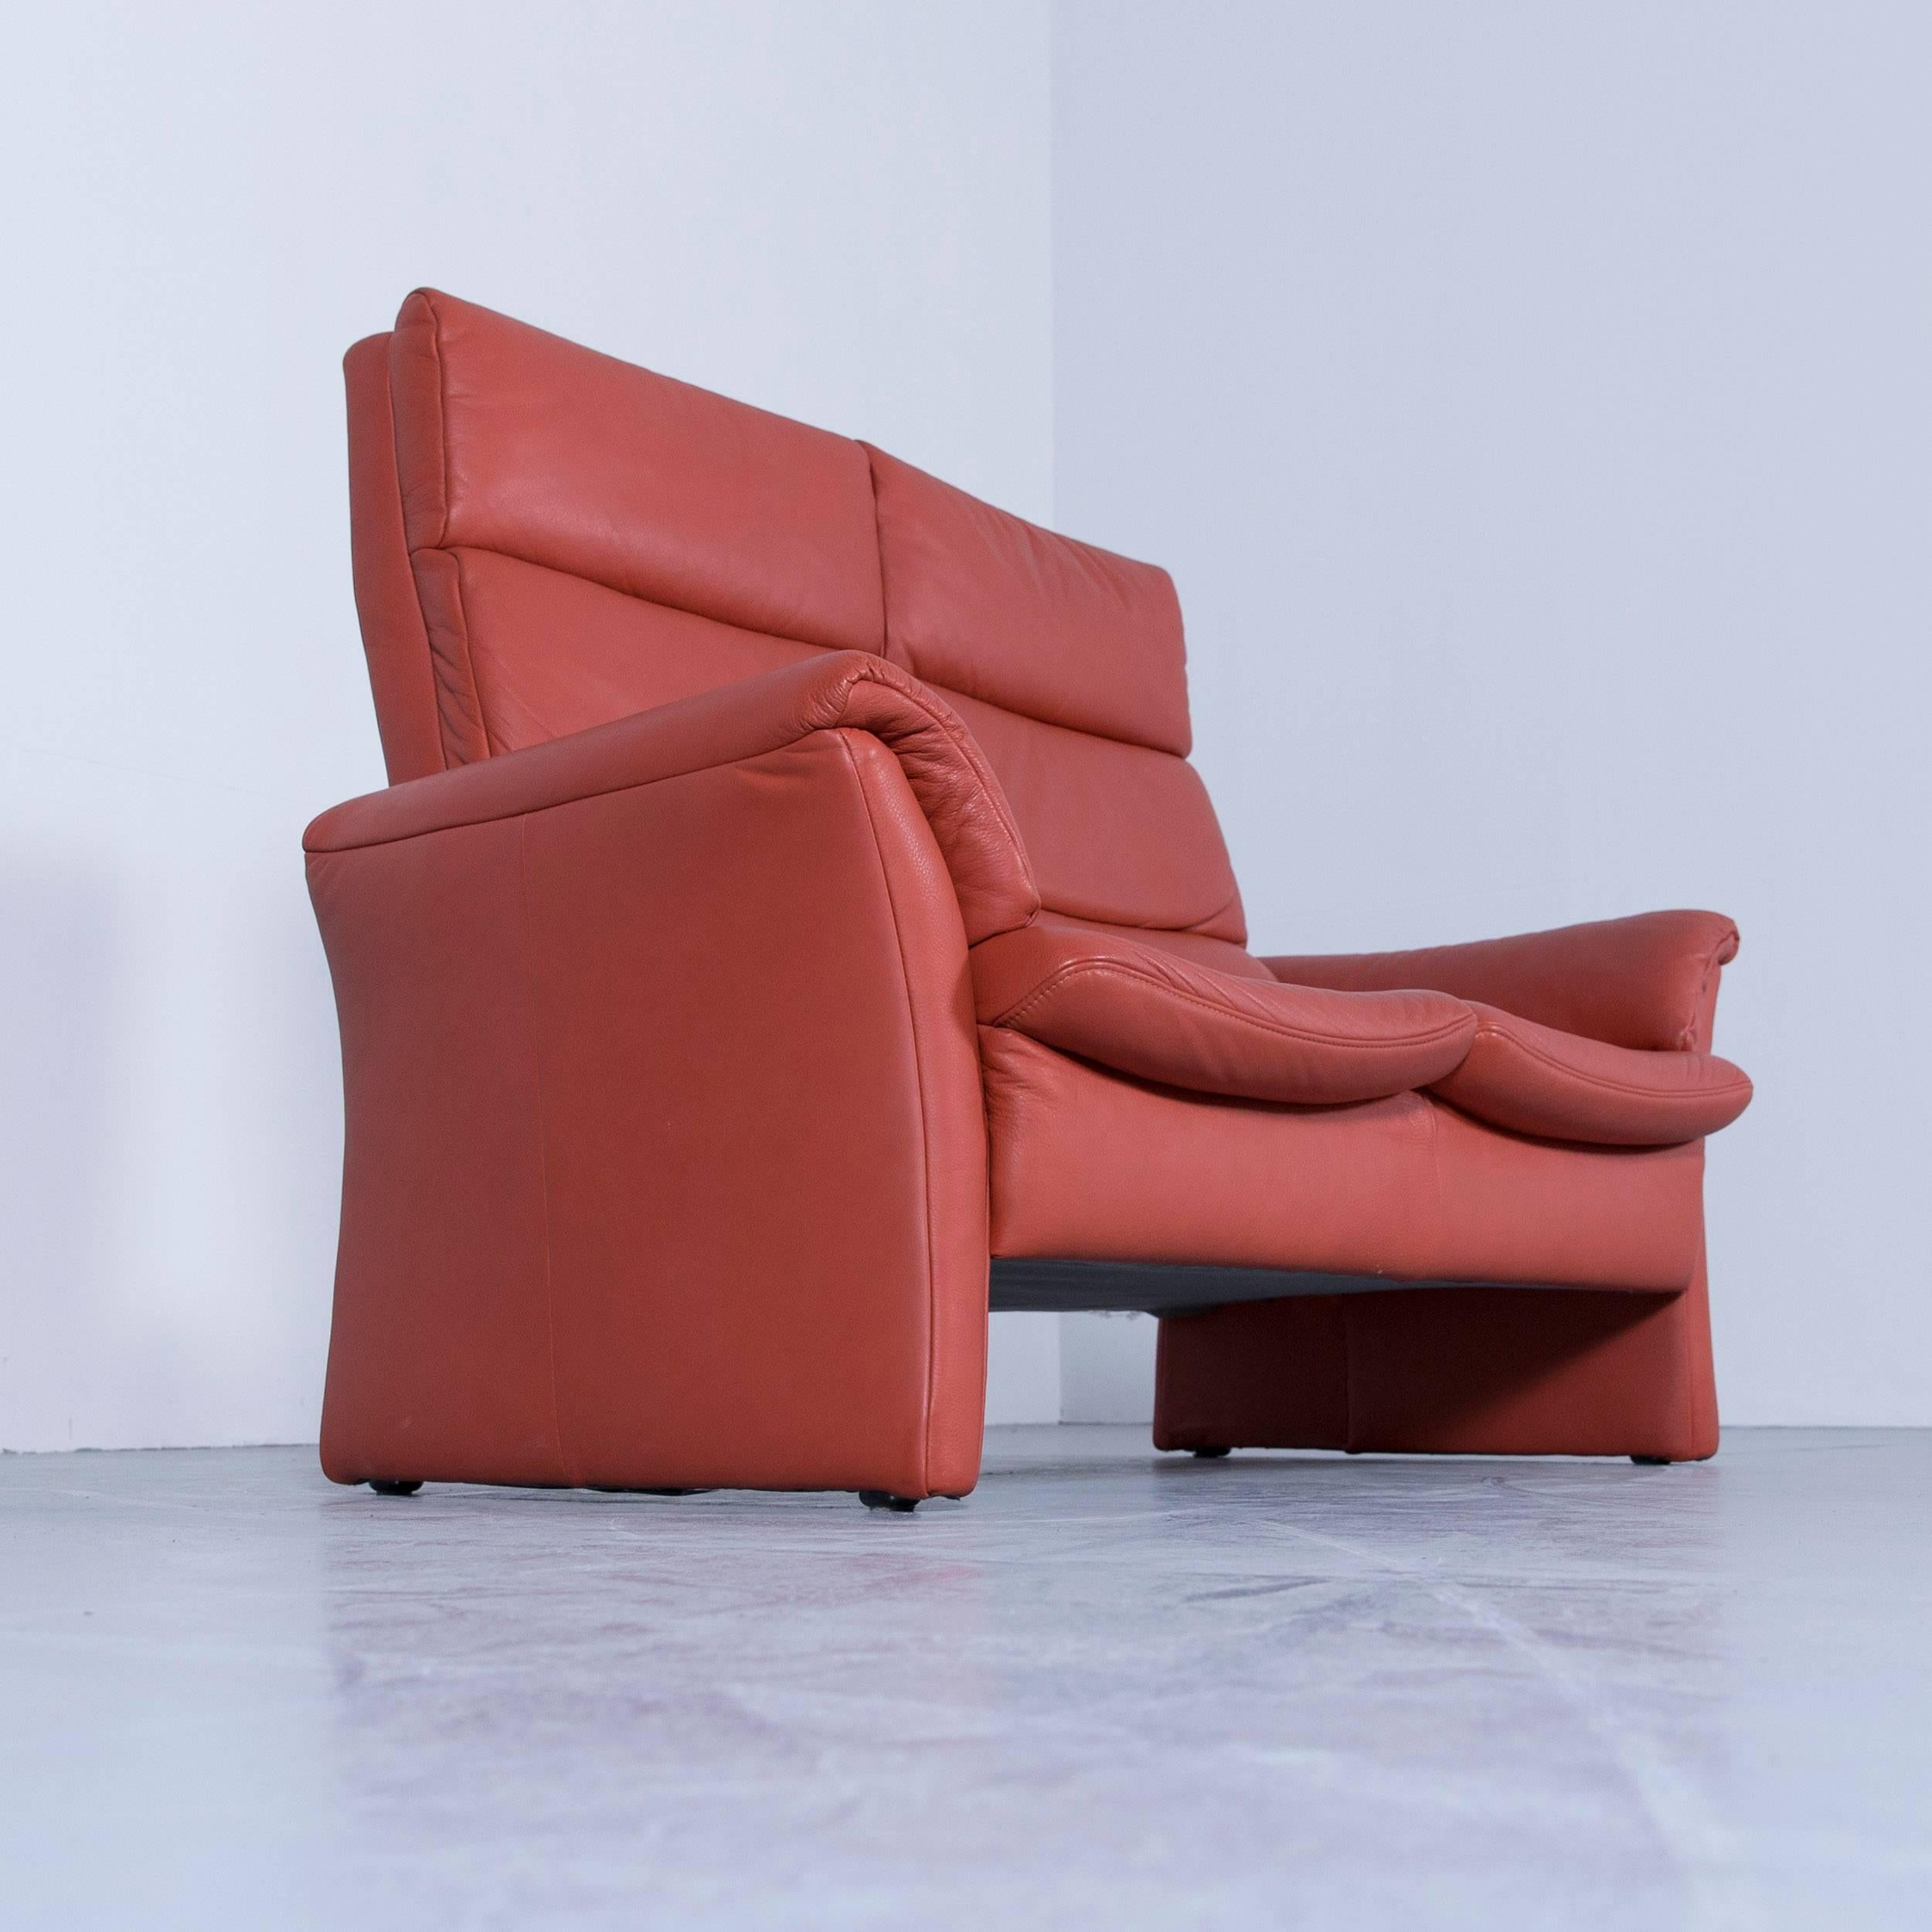 Himolla Sessel Gebraucht Himolla Zerostress Two Seat Sofa Leather Orange Relax One Seat Couch